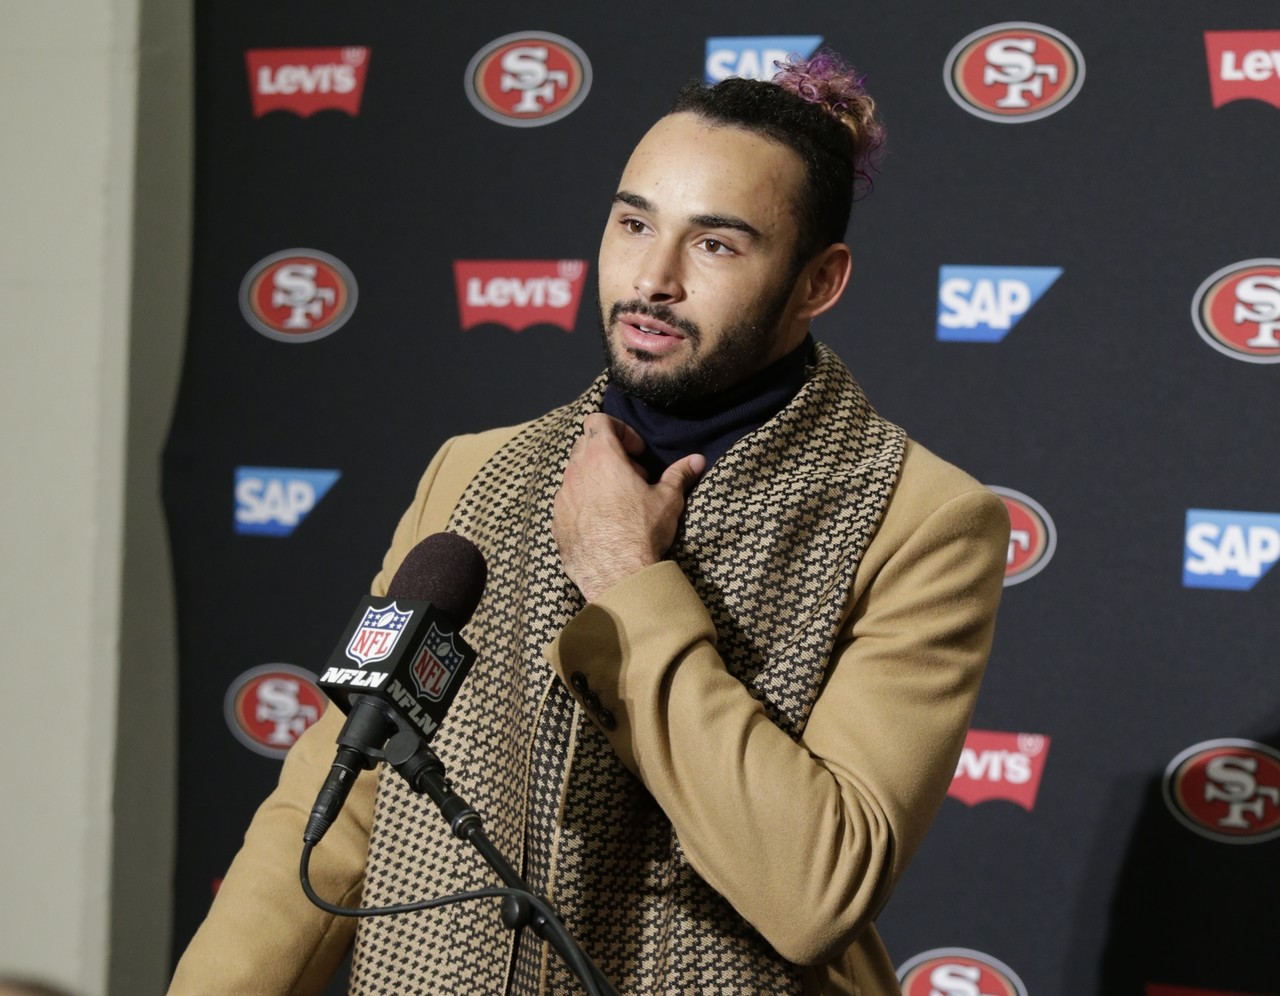 San Francisco 49ers wide receiver Dante Pettis talks to reporters following an NFL football game against the Seattle Seahawks, Sunday, Dec. 2, 2018, in Seattle. The Seahawks won 43-16.